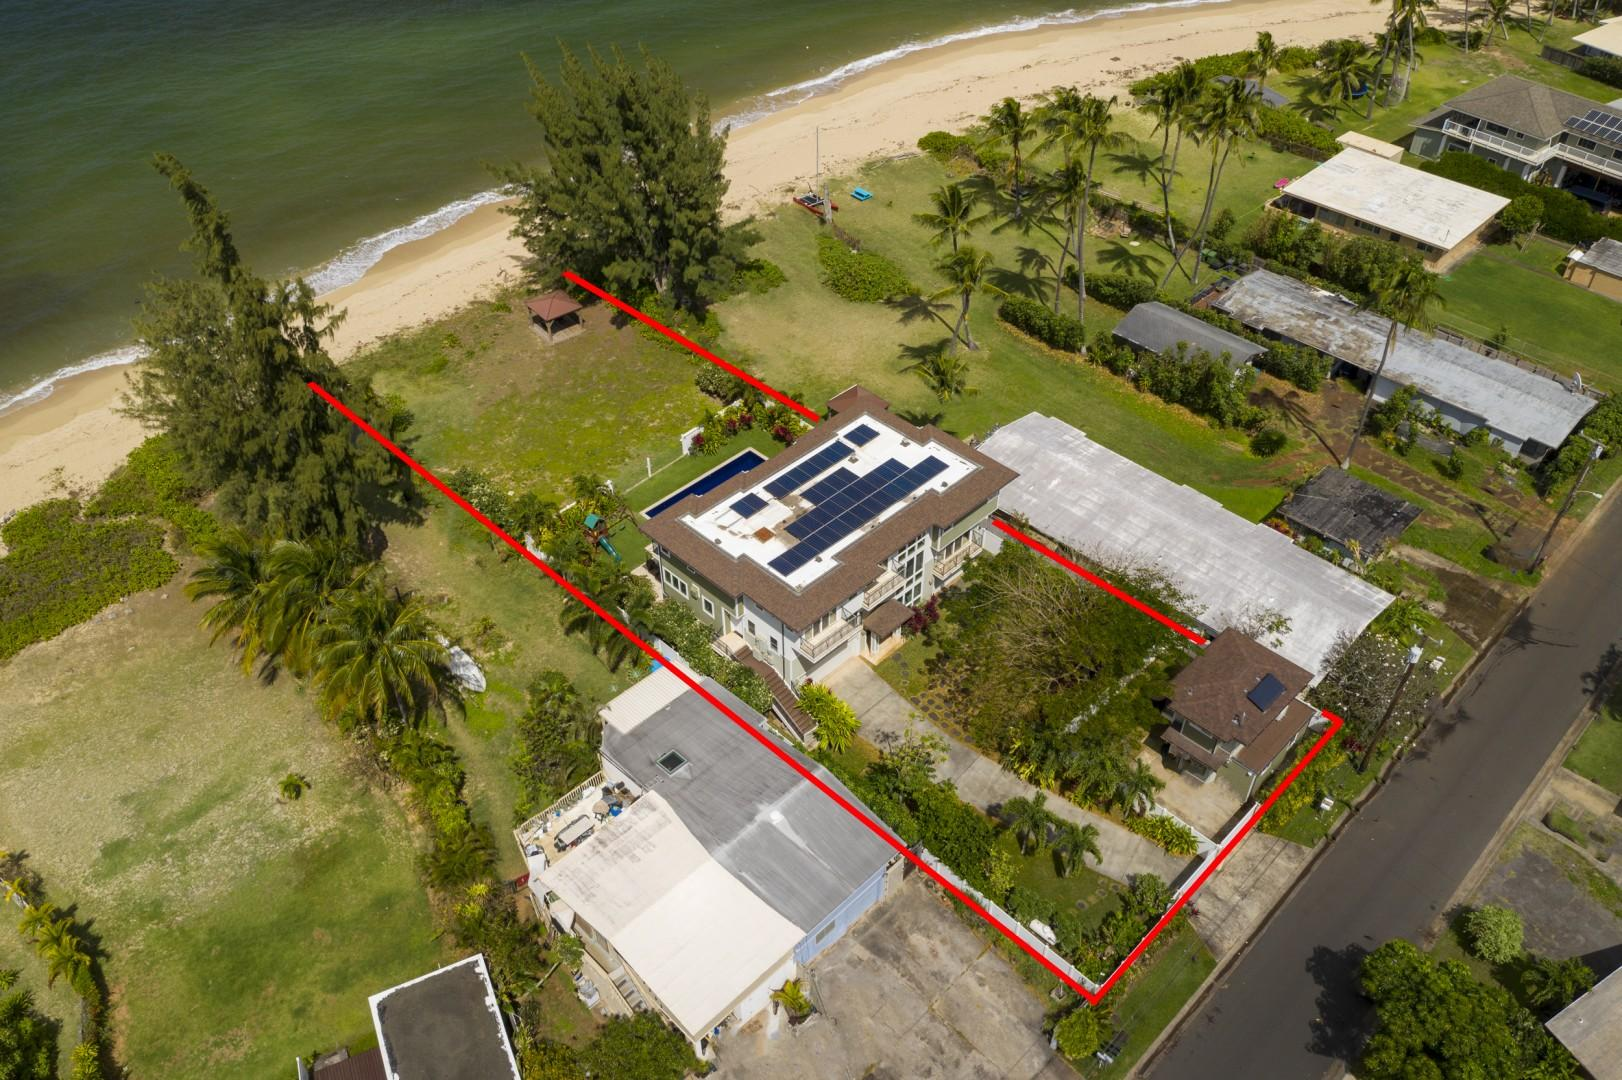 Another aerial view, showing the home's beach access.